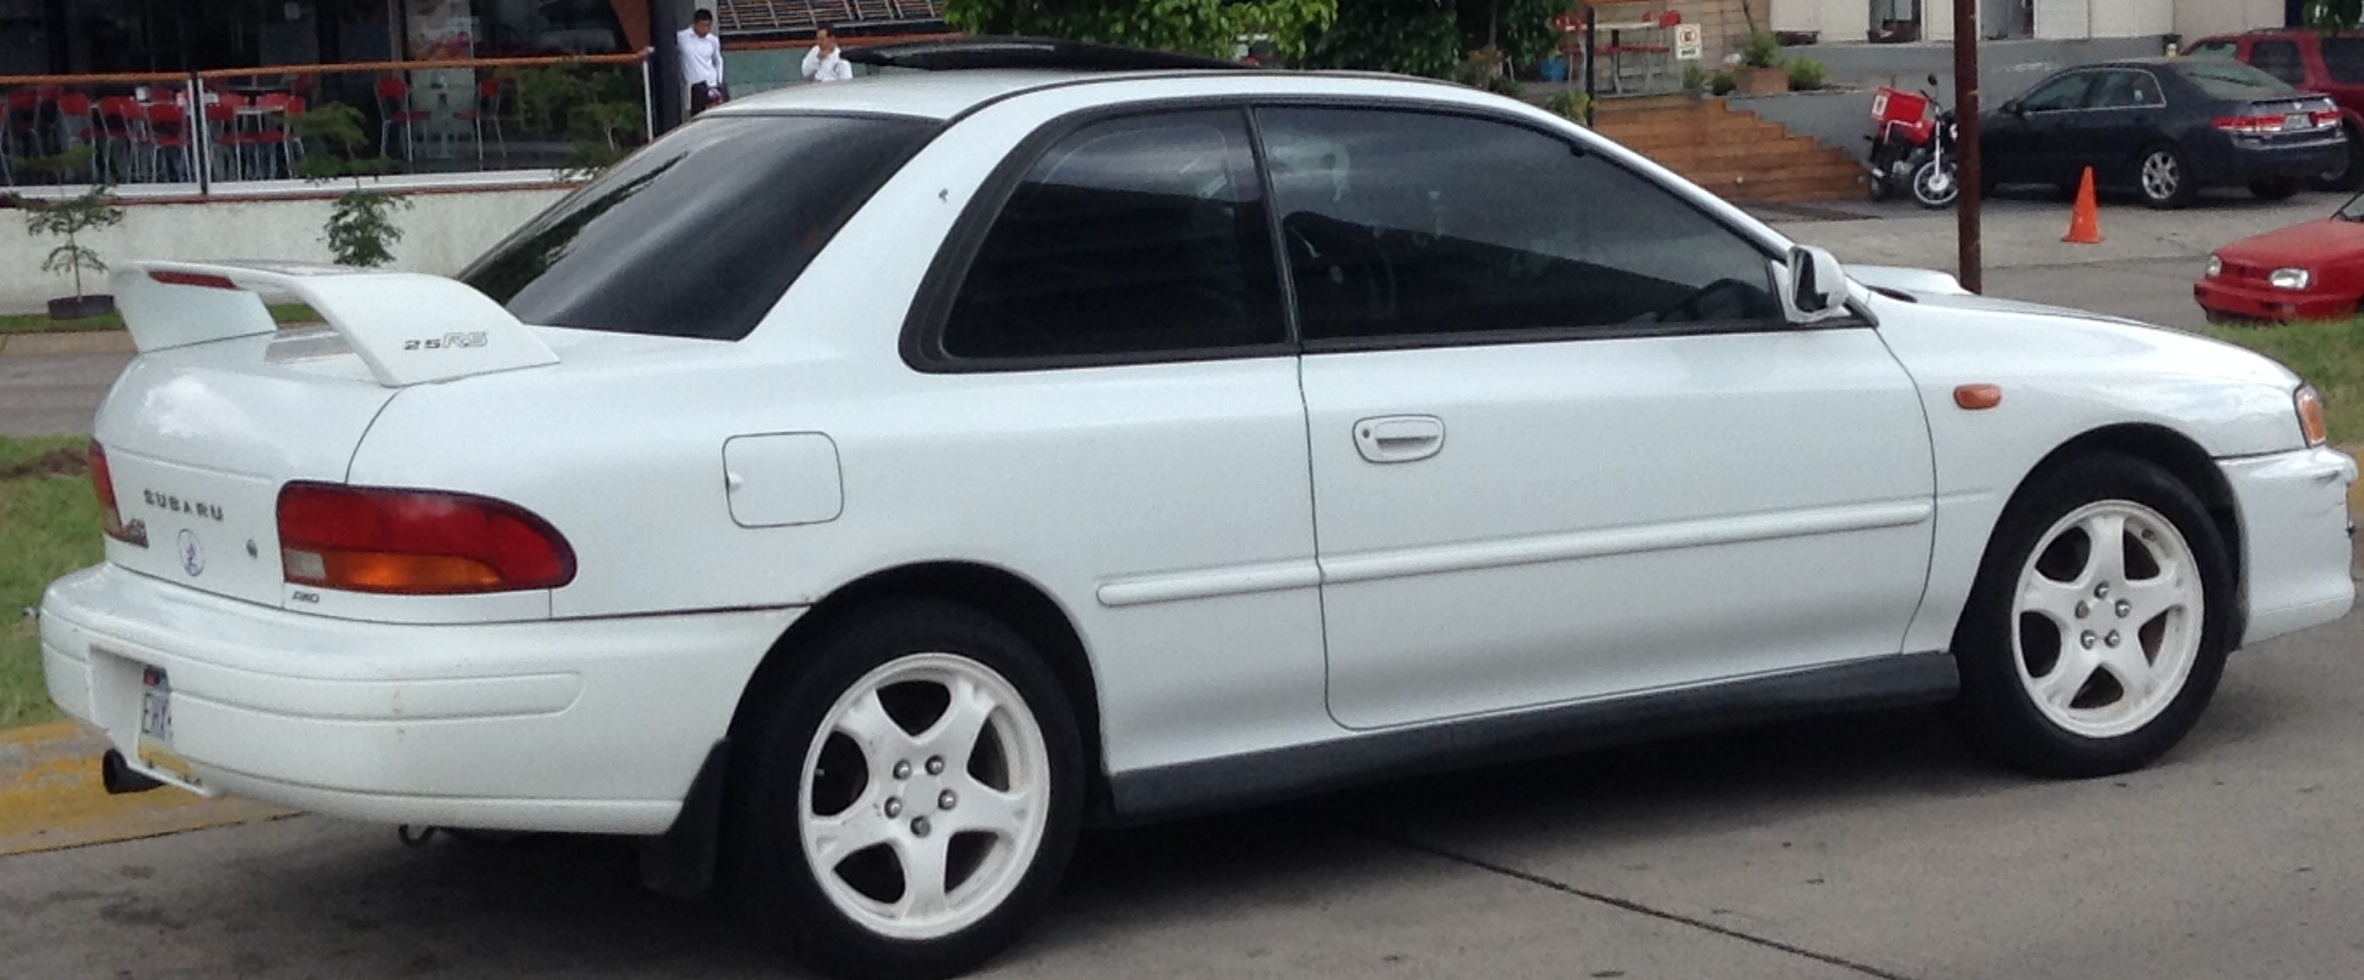 only 1999 subaru 2 5 rs coupe in mexico uag medical school classifieds. Black Bedroom Furniture Sets. Home Design Ideas